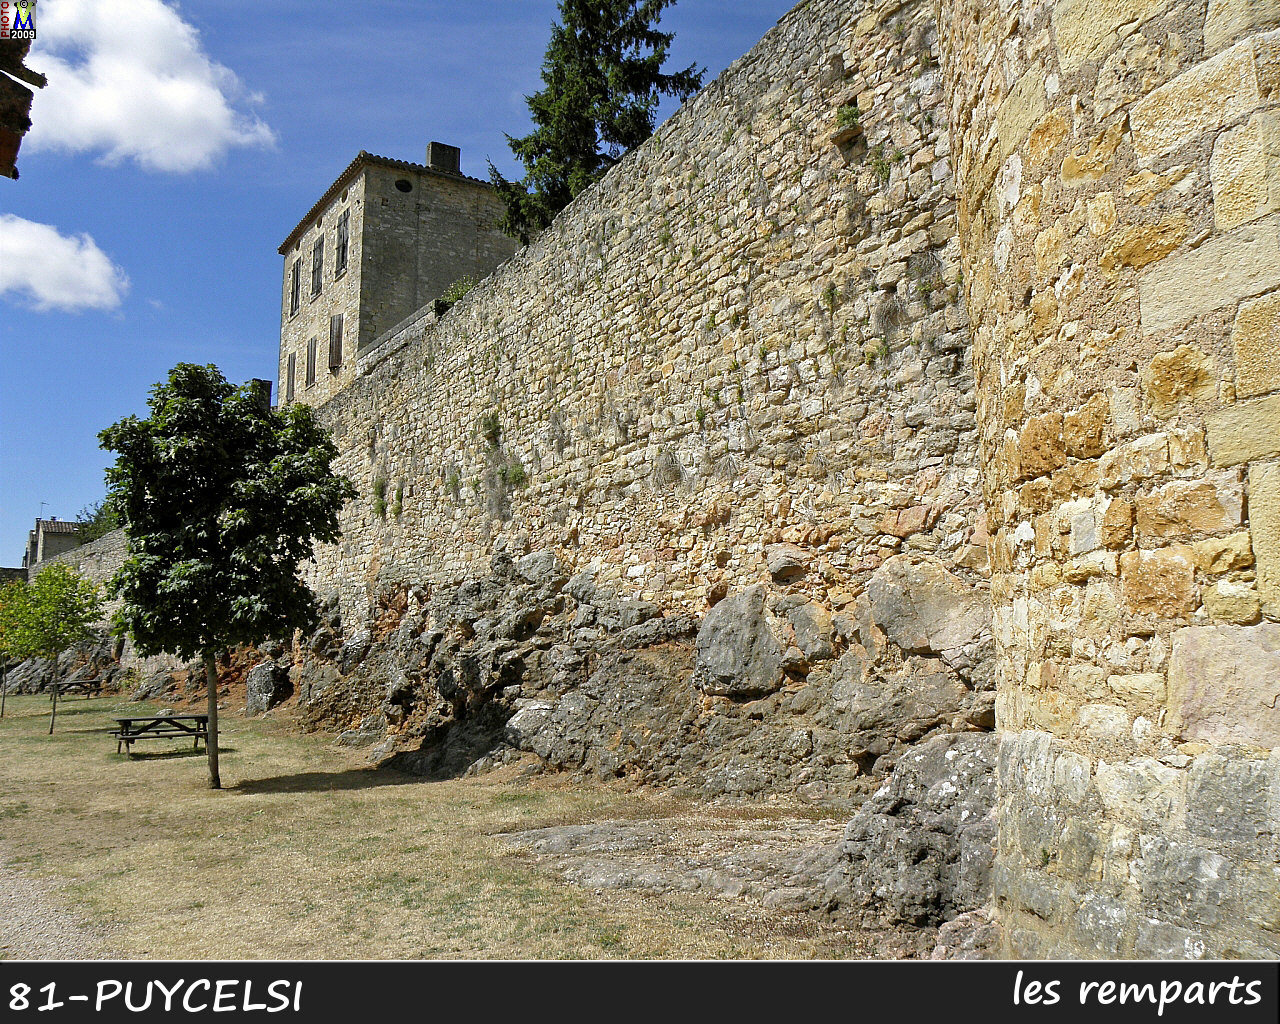 81PUYCELSI_remparts_104.jpg